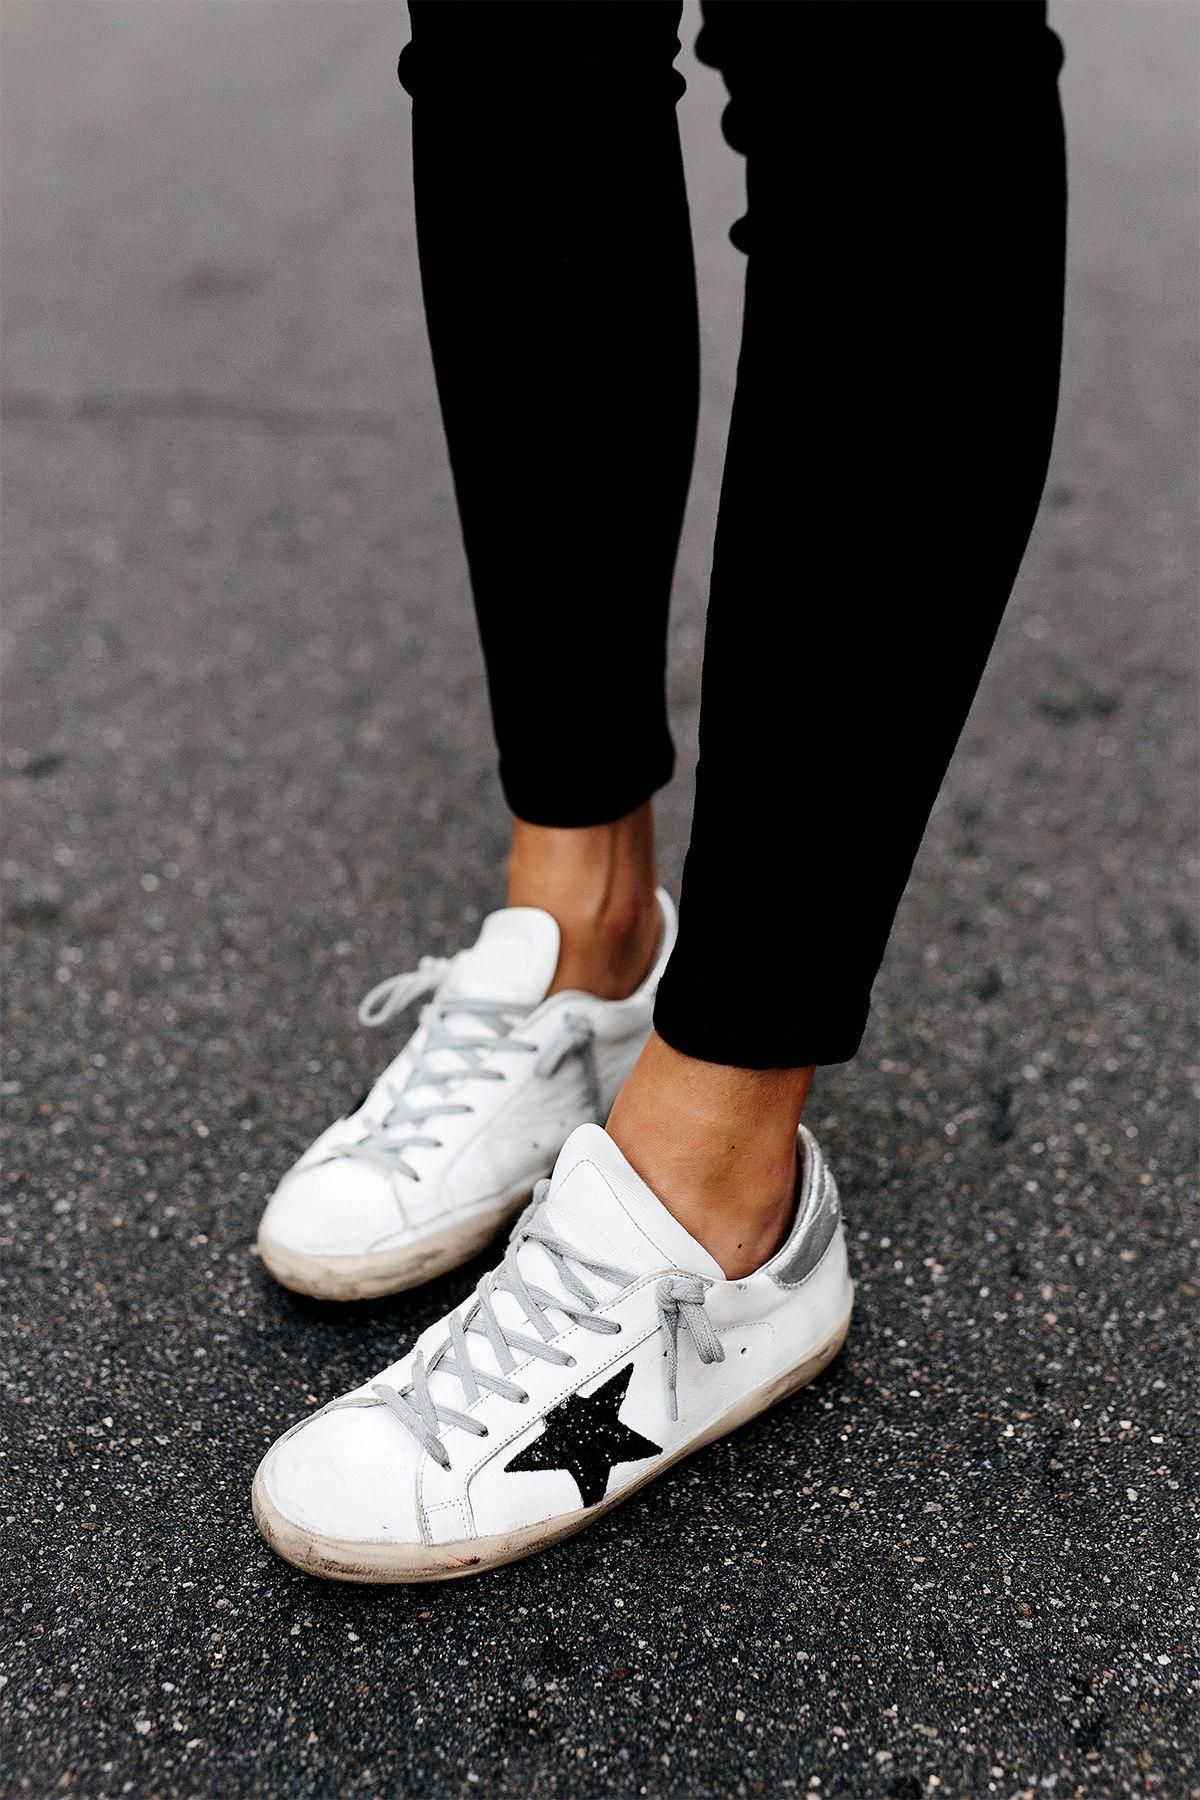 Pin by Sofia Suazo on Shoes in 2020 | Golden goose sneakers